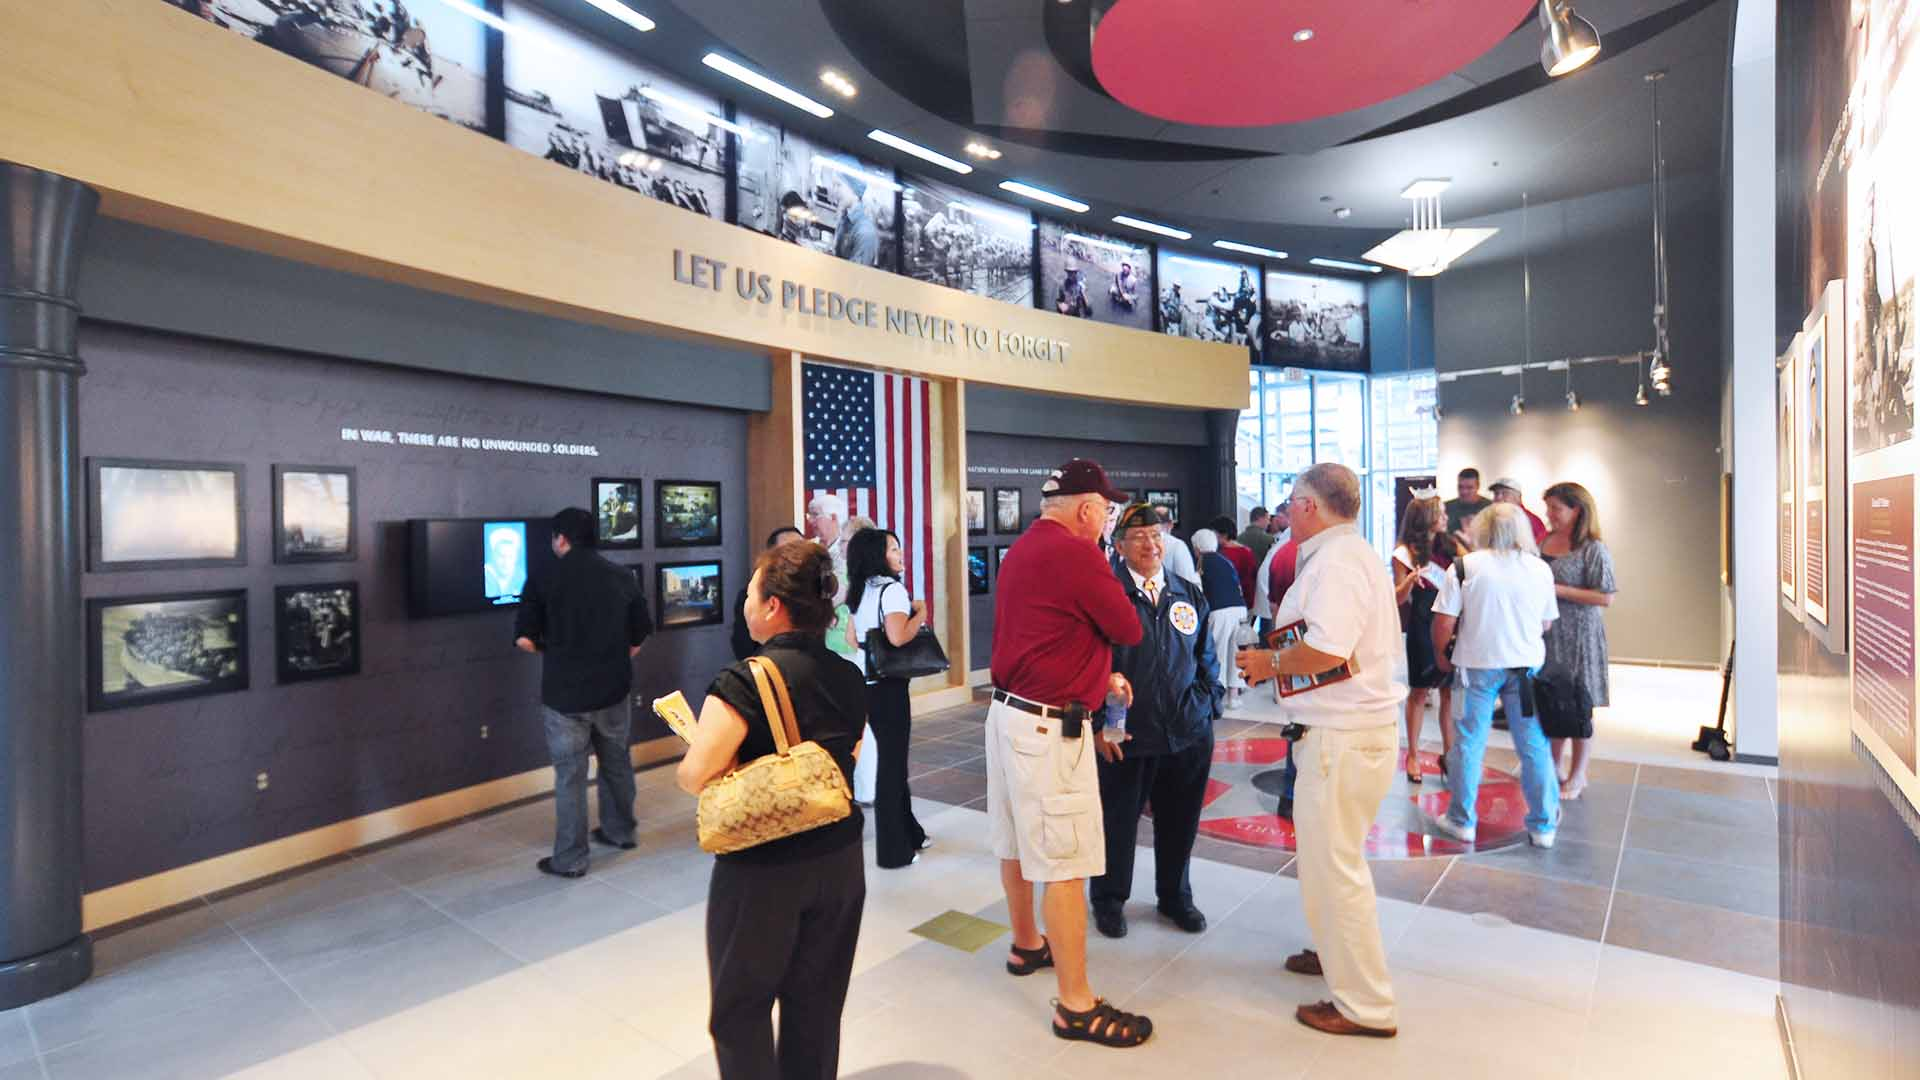 Veteran's Memorial museum exhibit space with media, photos, and artifacts